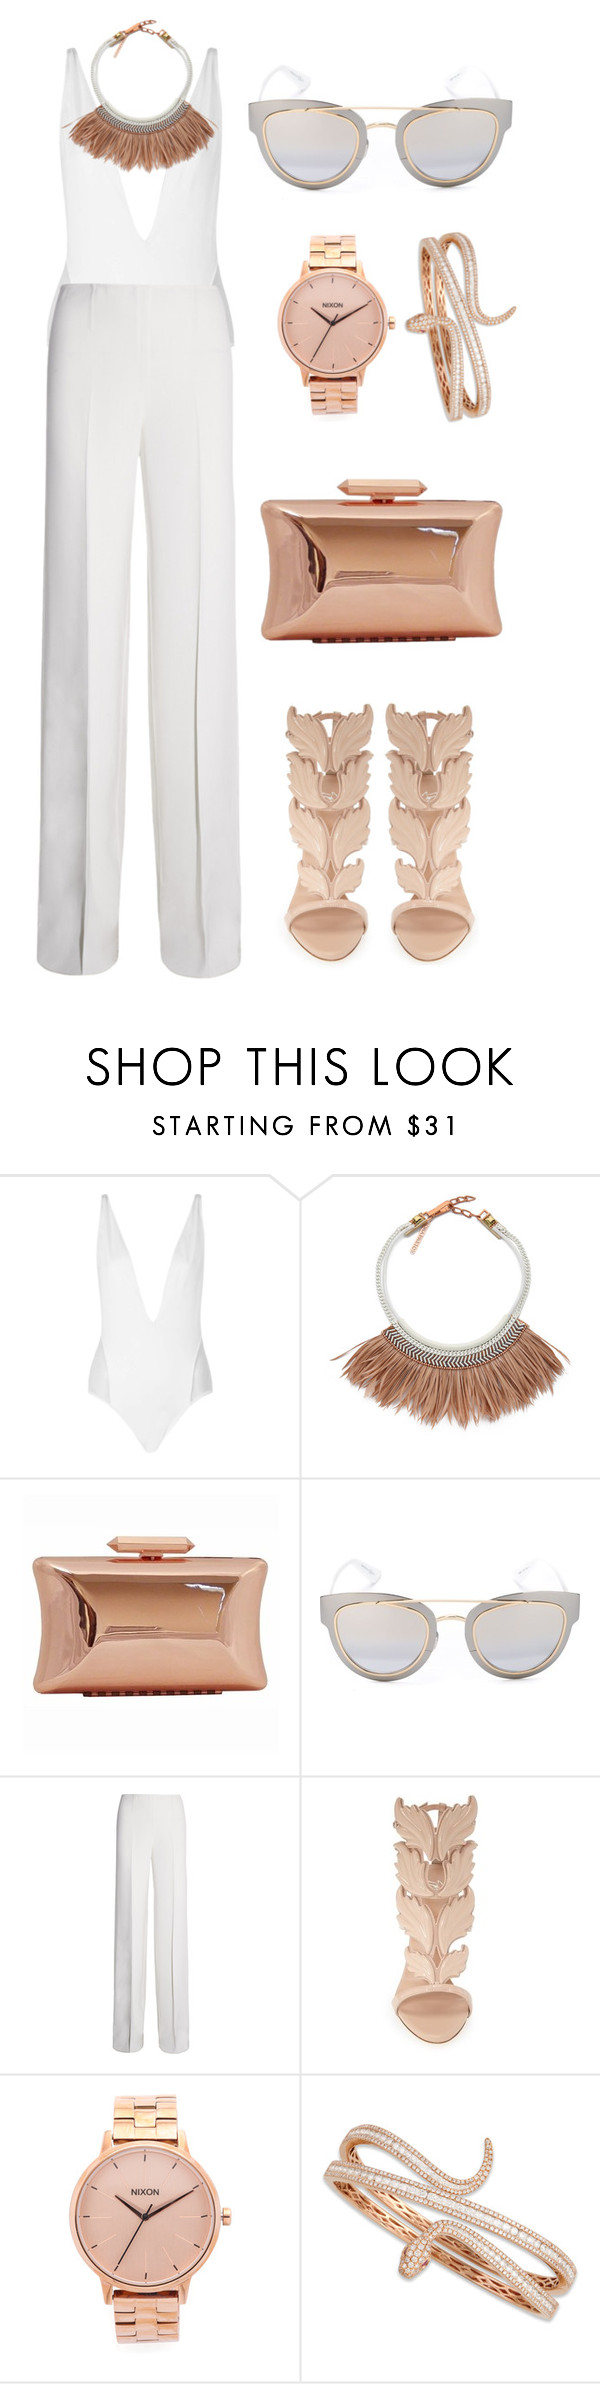 """Untitled #490"" by dontlookforme ❤ liked on Polyvore featuring Topshop, Fiona Paxton, Treesje, Christian Dior, KaufmanFranco, Giuseppe Zanotti, Nixon and Roberto Coin"